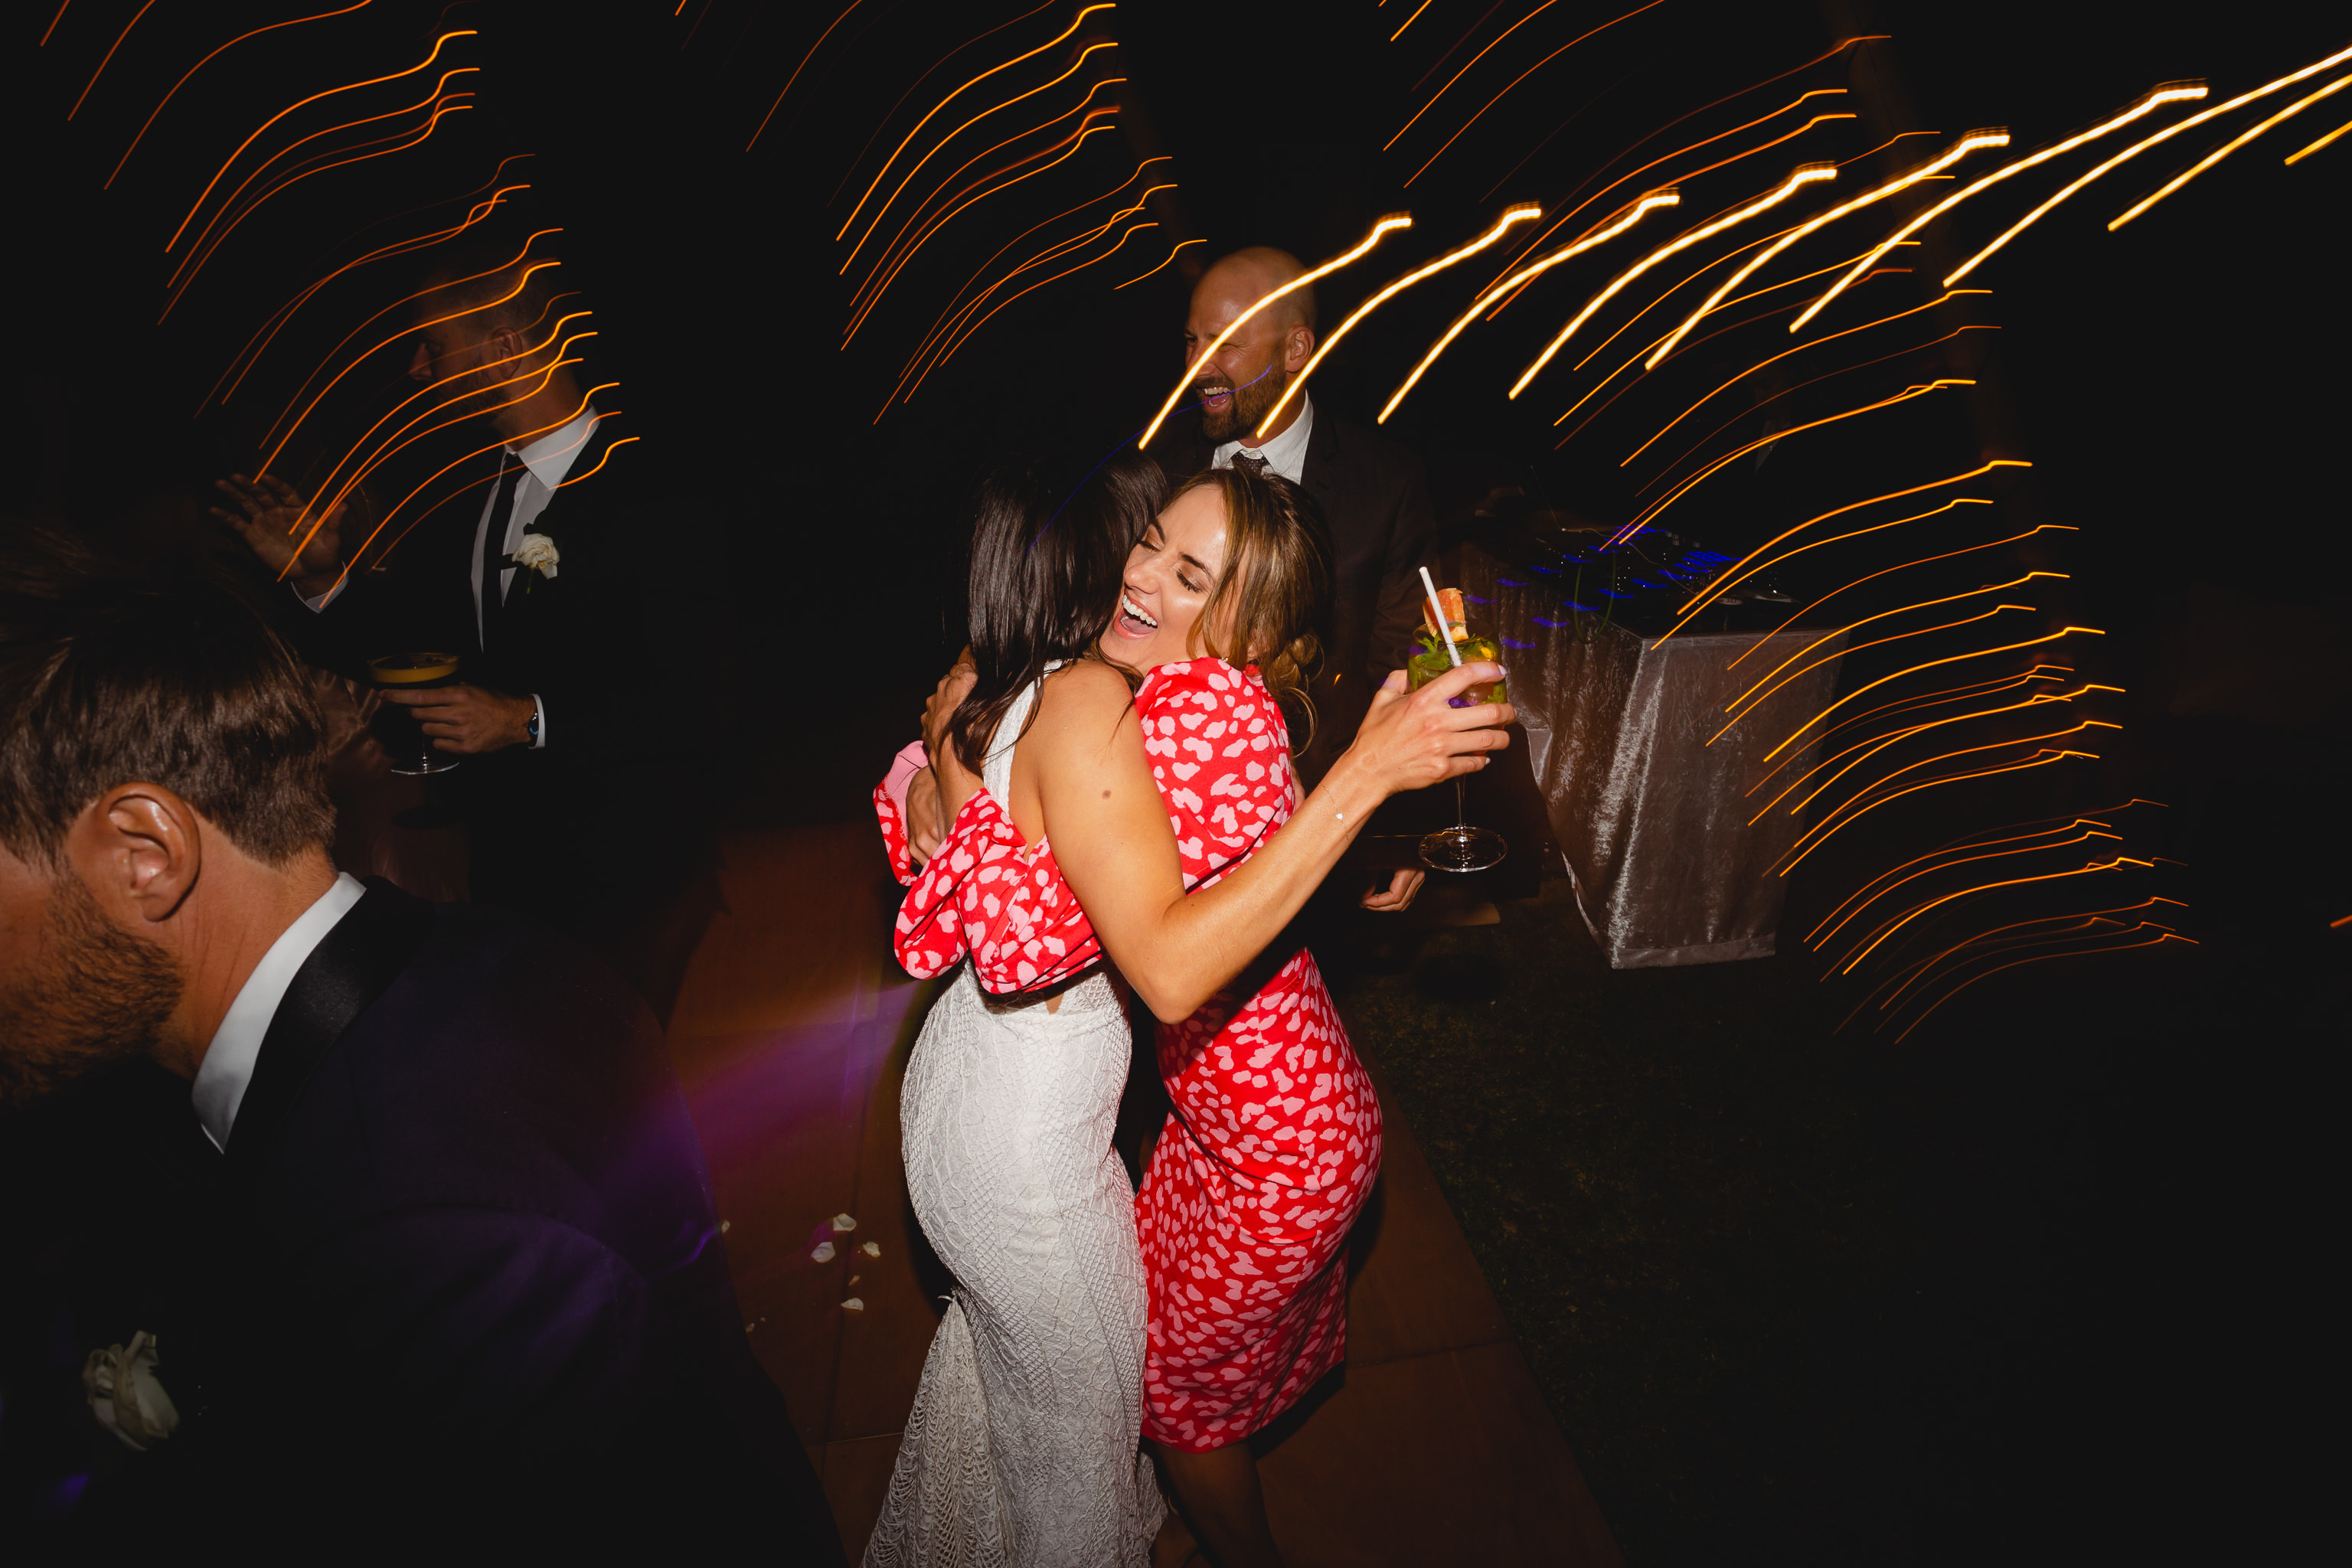 Woman in red dress laughing and hugging bride on dancefloor at wedding reception